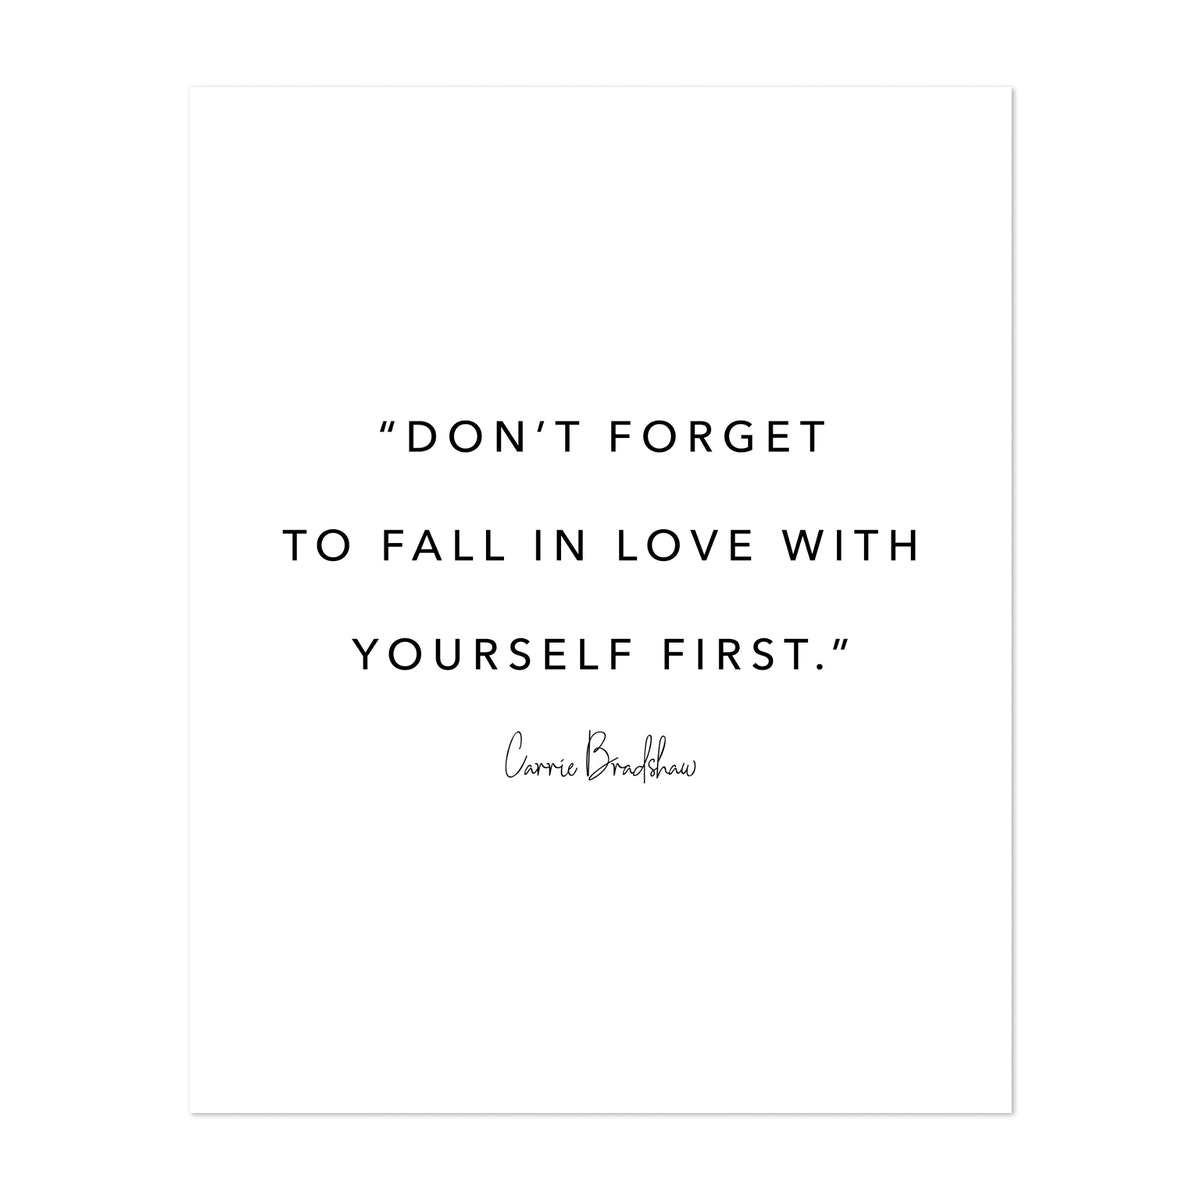 Don't Forget to Fall In Love with Yourself First. -Carrie Bradshaw Quote